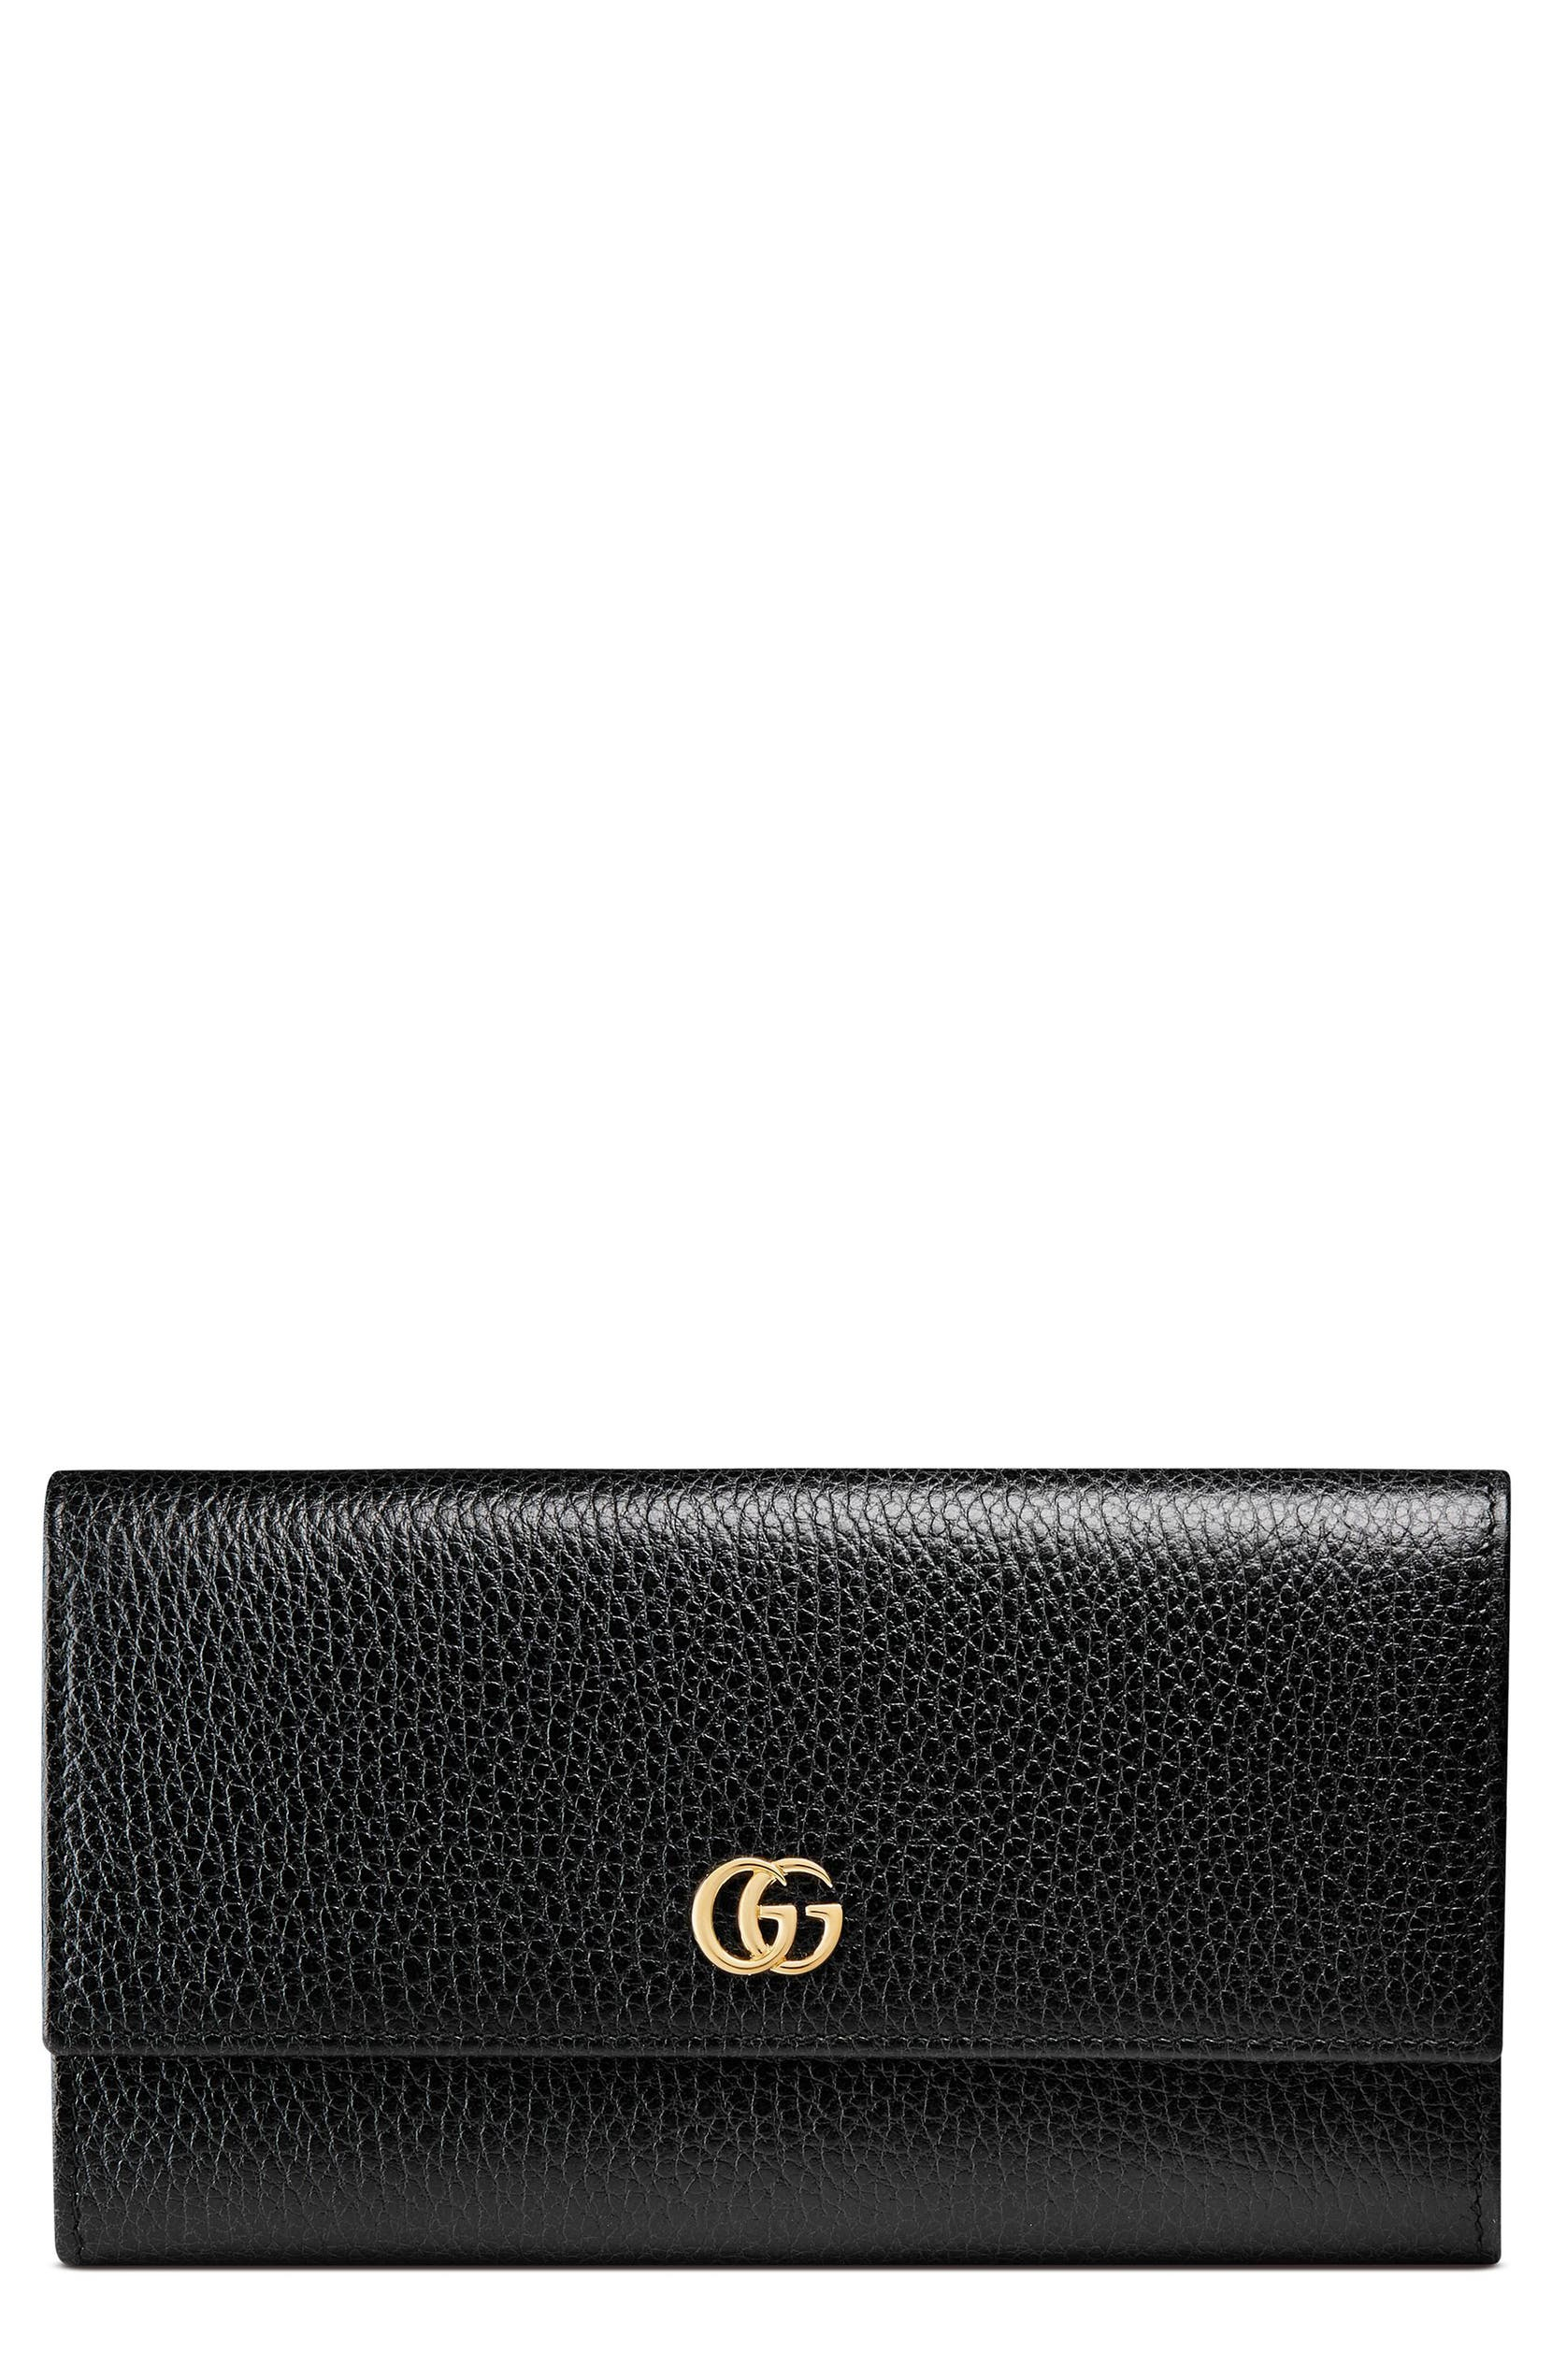 ee8cc33f04a0 Gucci Petite Marmont Leather Continental Wallet | Nordstrom